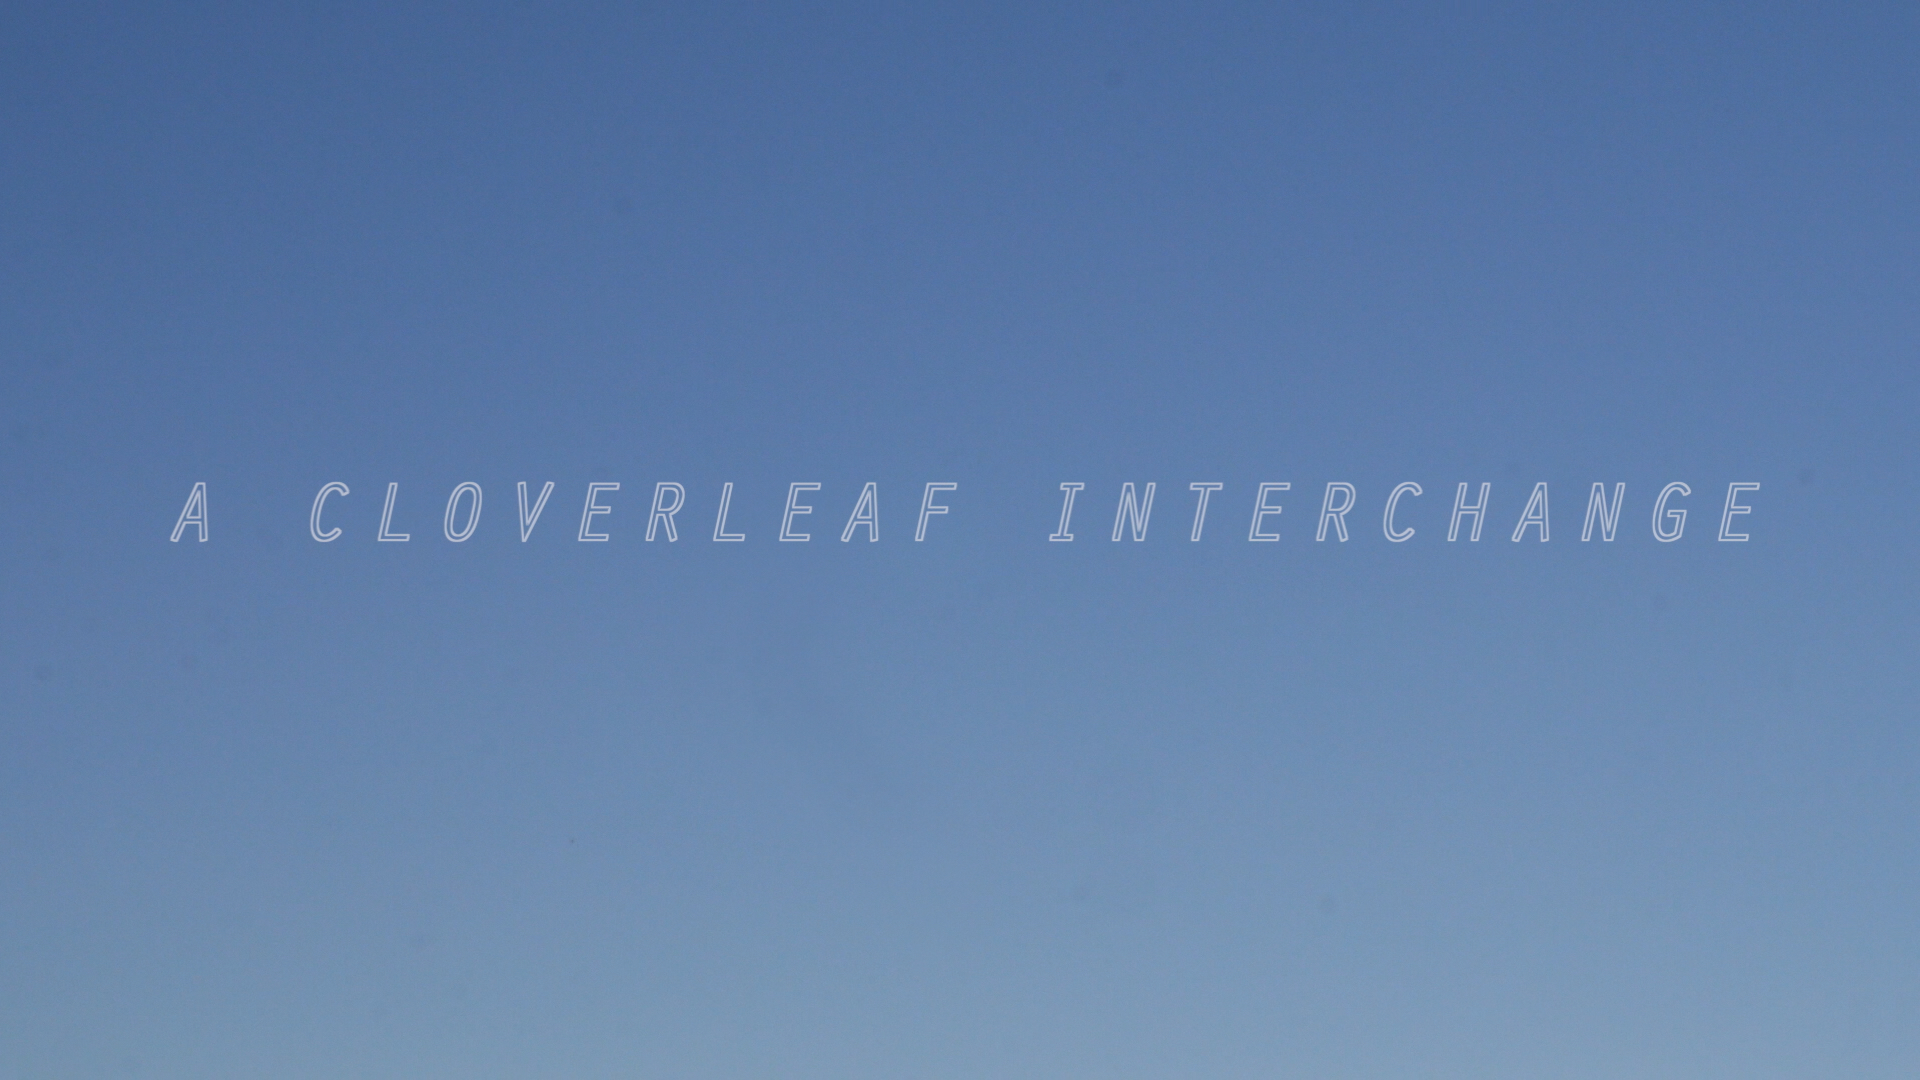 A Cloverleaf Interchange  (2017) is a work for video and live performer.  It has been performed at Mills College, Pro Arts Gallery, Aurora Providence, and the Lightfield Film Festival.  SYNOPSIS: A driver and passenger misread a highway sign, sparking a sequence of dreams in the passenger and a sequence of daydreams in the driver.